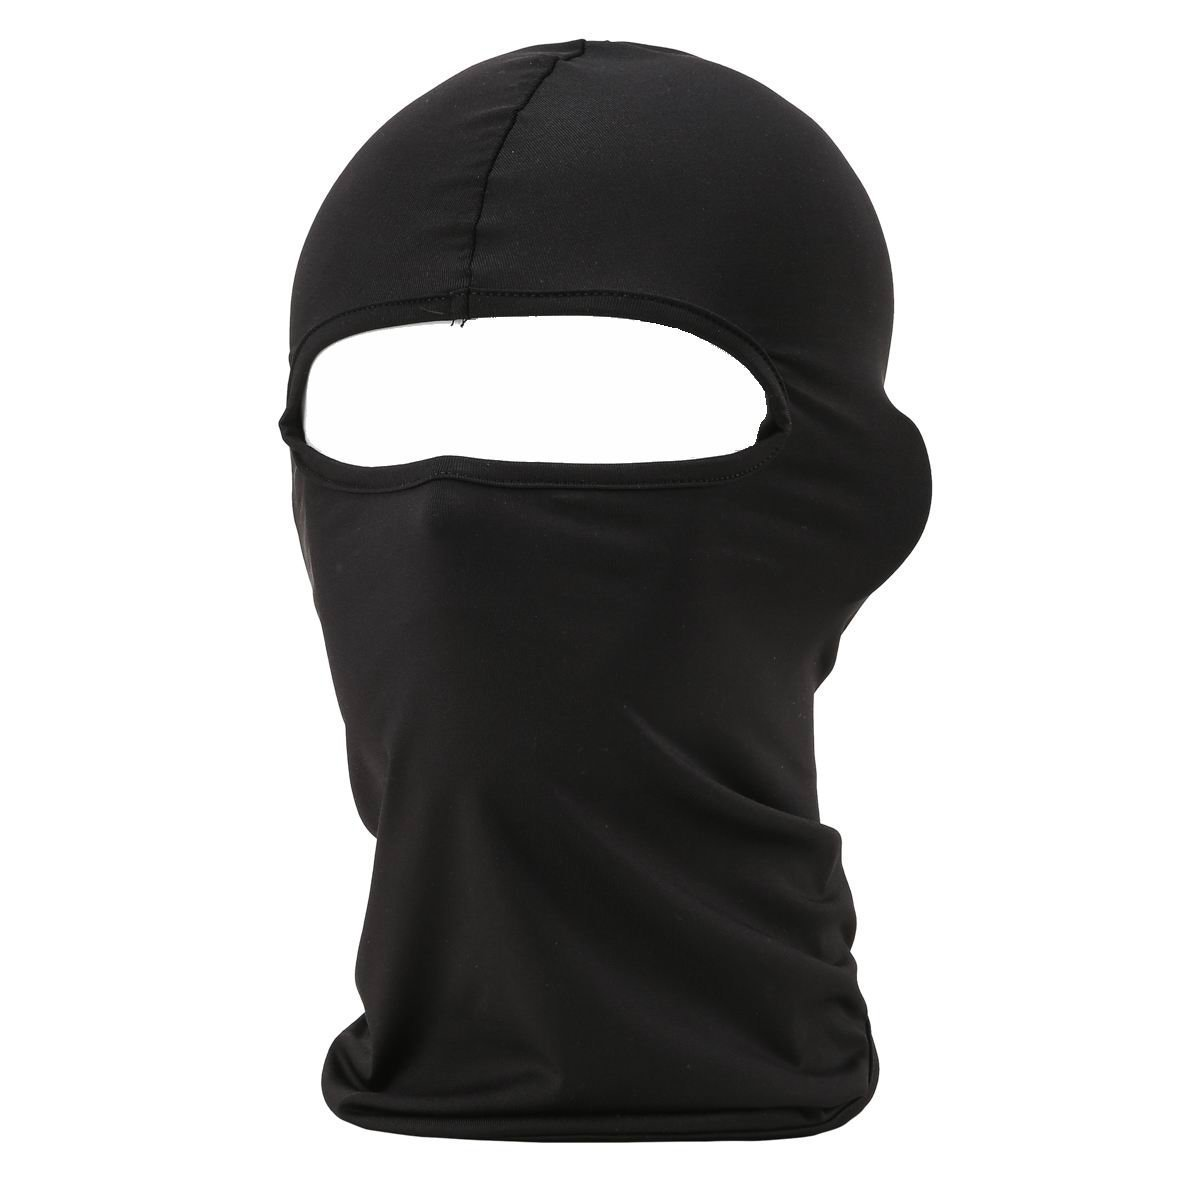 Eavacic Balaclava Tactical Face Mask Hood Neck Gaiter 1 Pack BF-black